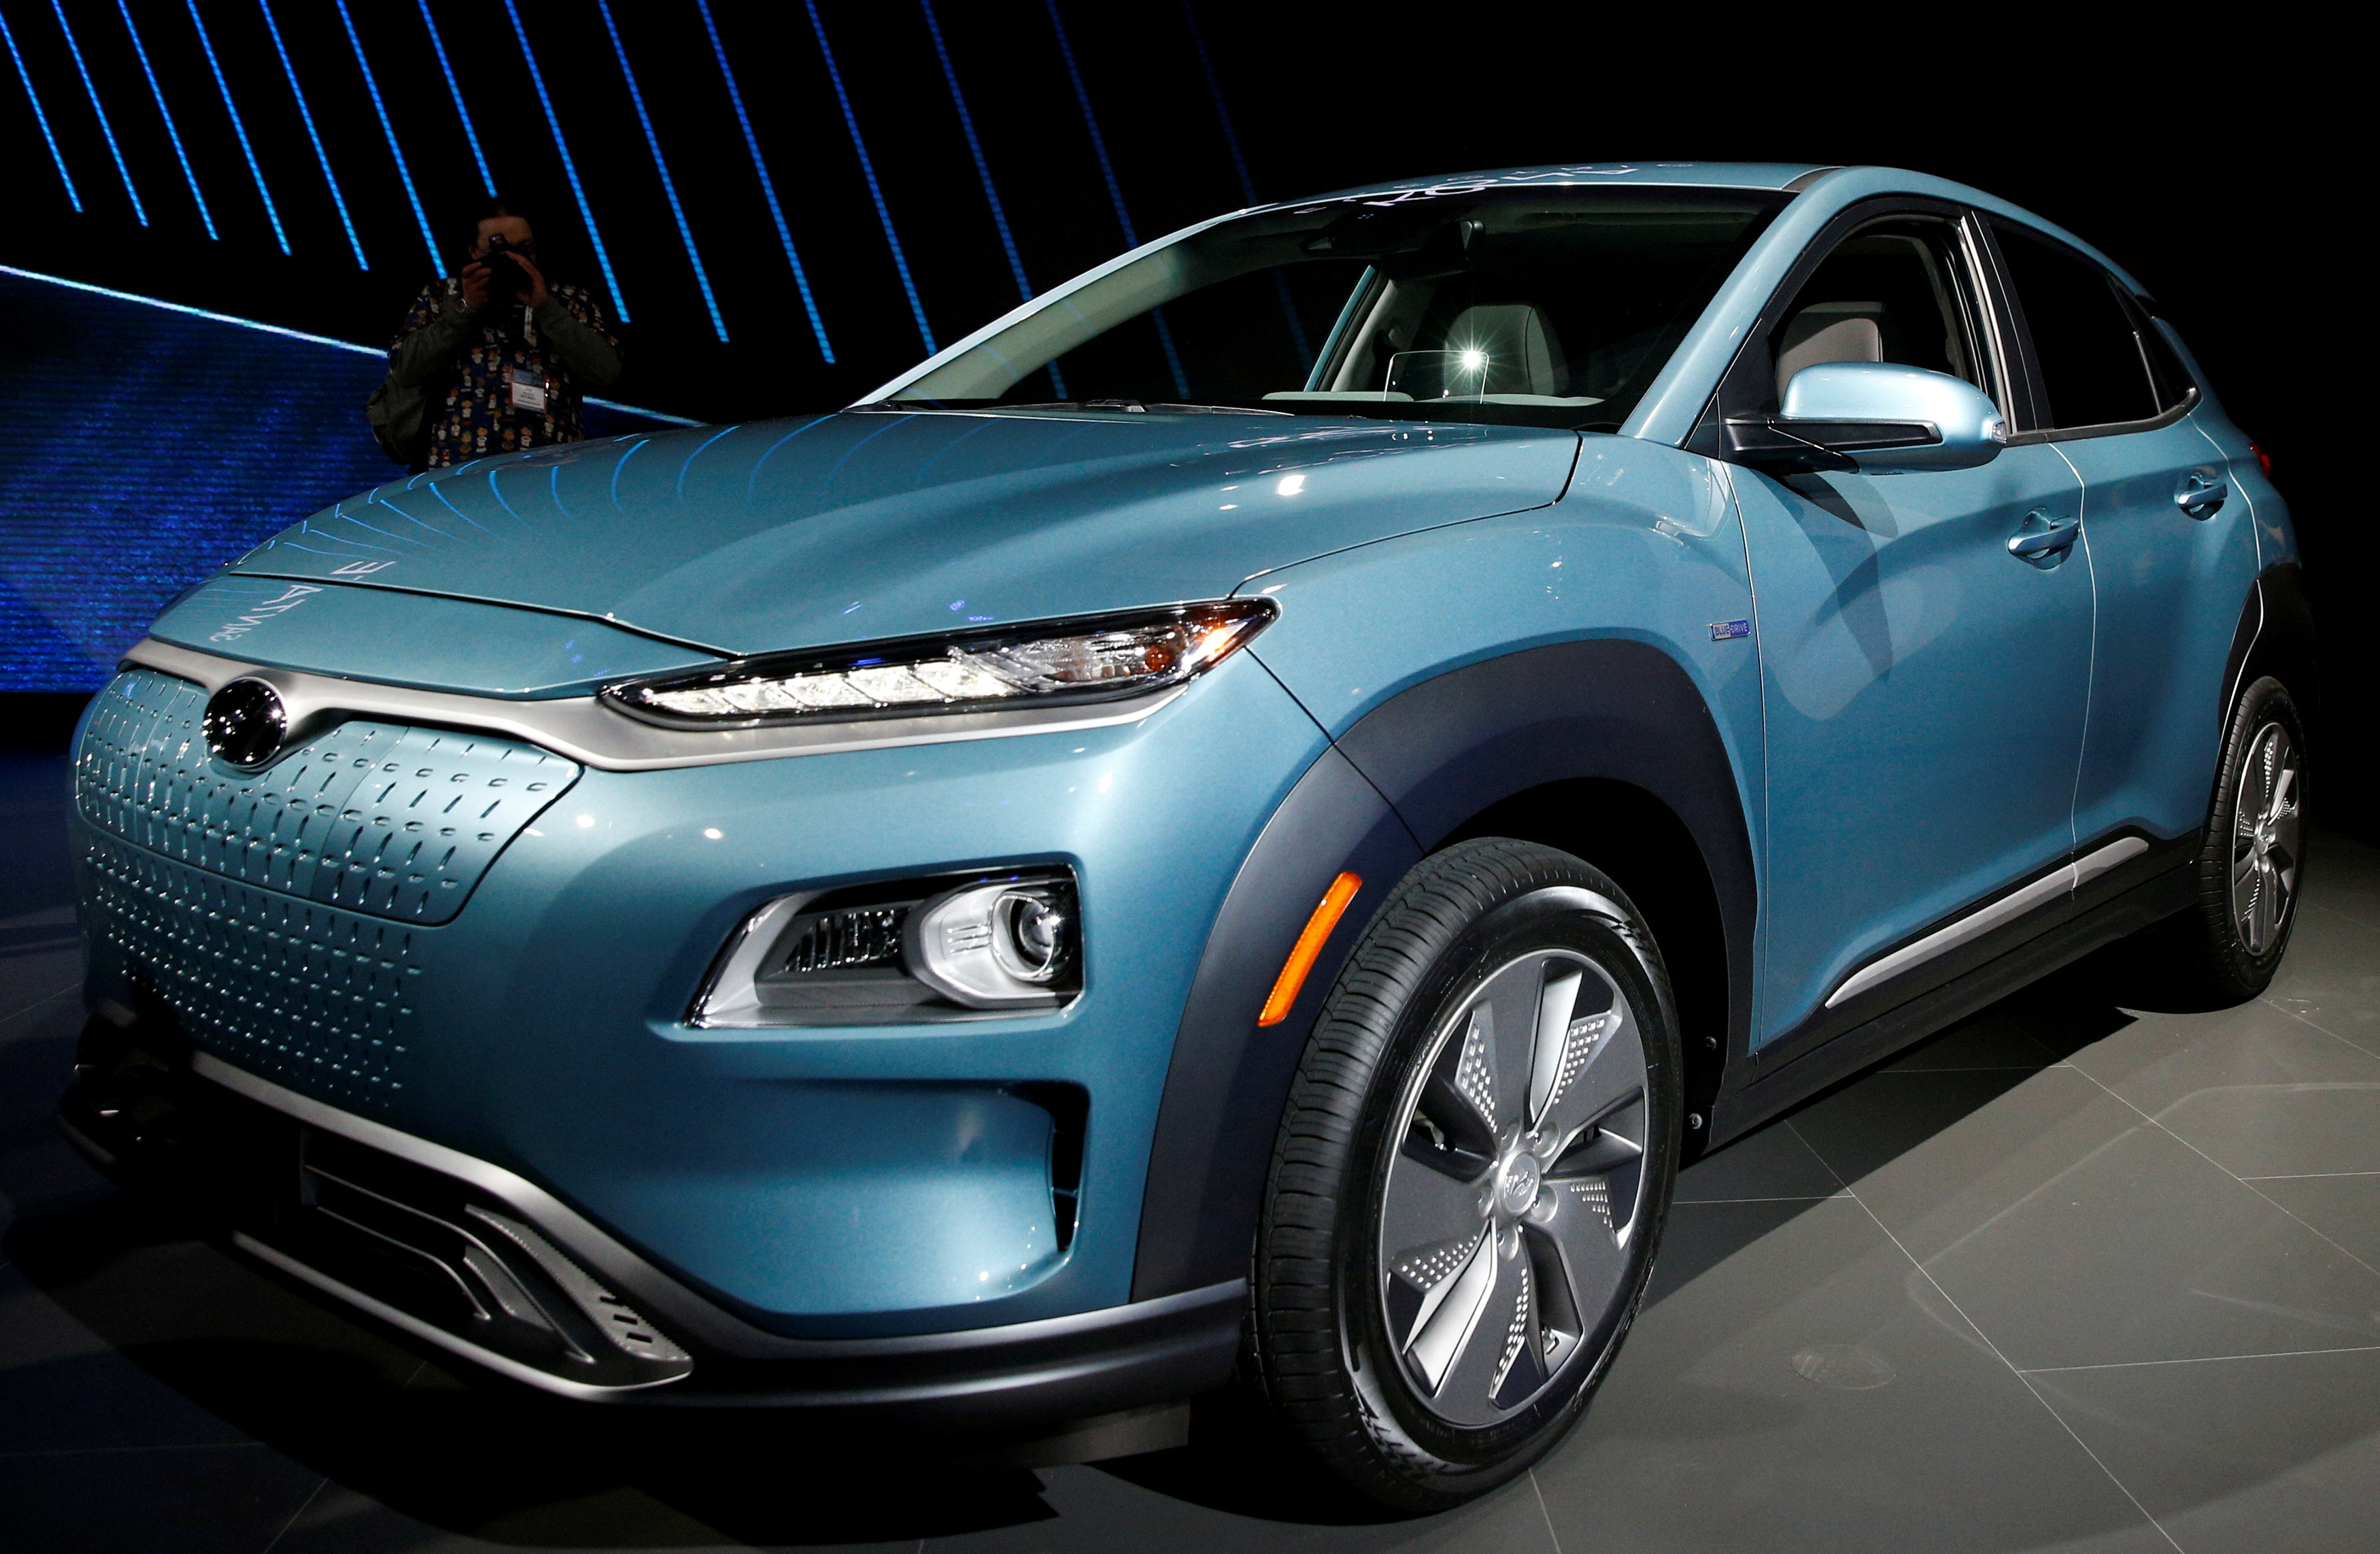 The 2019 Hyundai Kona Electric vehicle is displayed at the New York Auto Show in the Manhattan borough of New York City, New York, U.S., March 28, 2018. REUTERS/Brendan McDermid